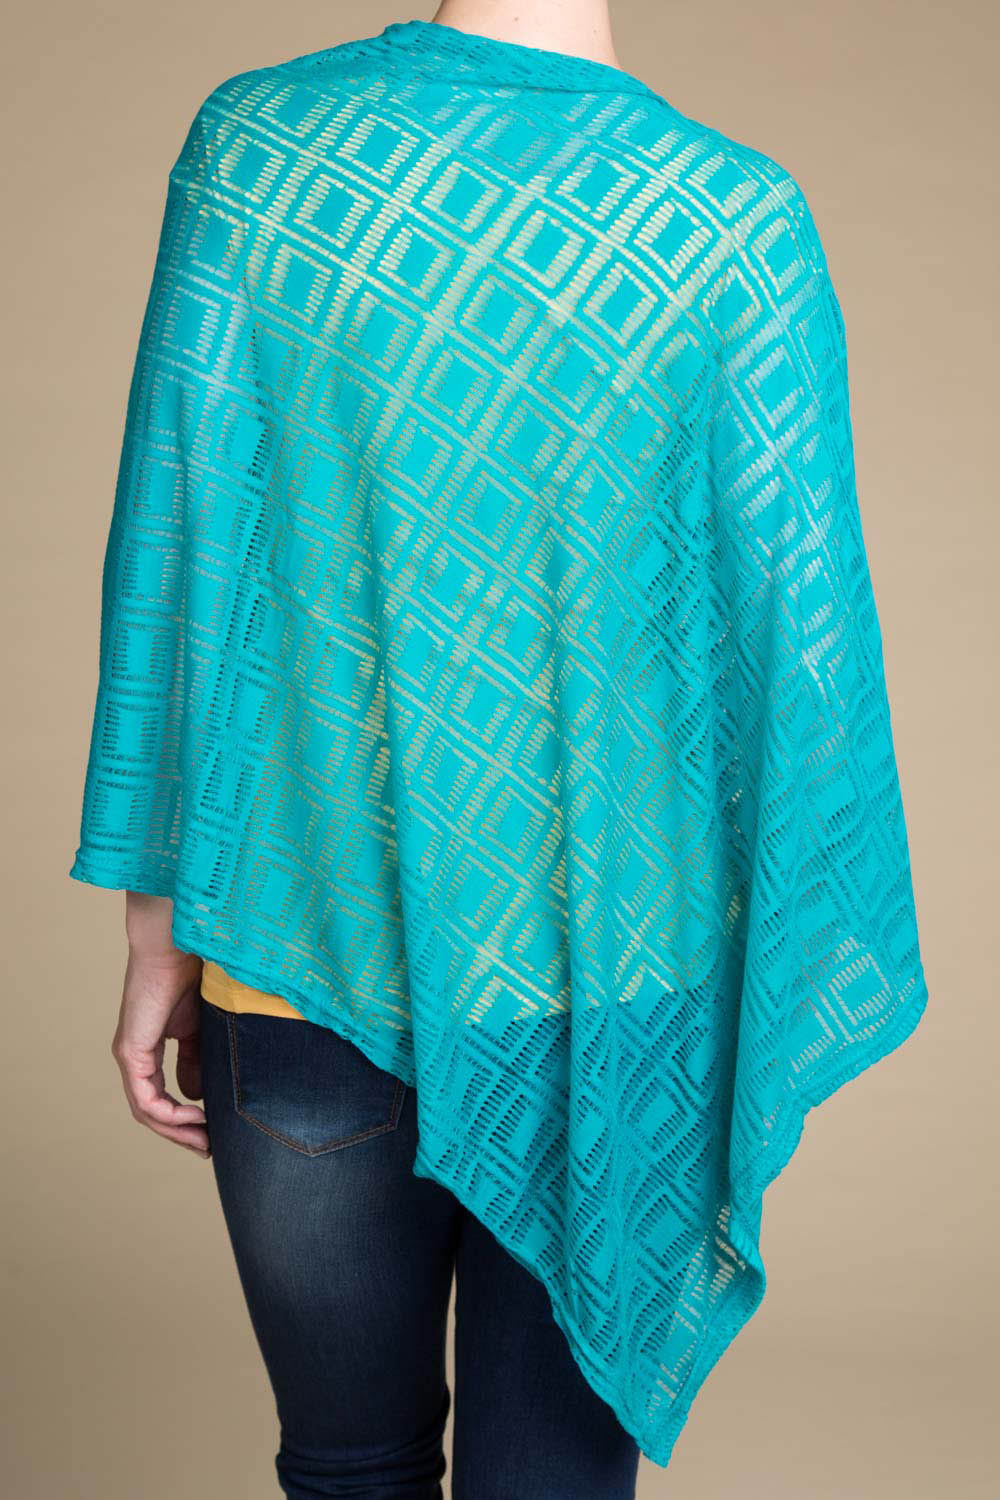 Type 3 Teals The Deal Poncho